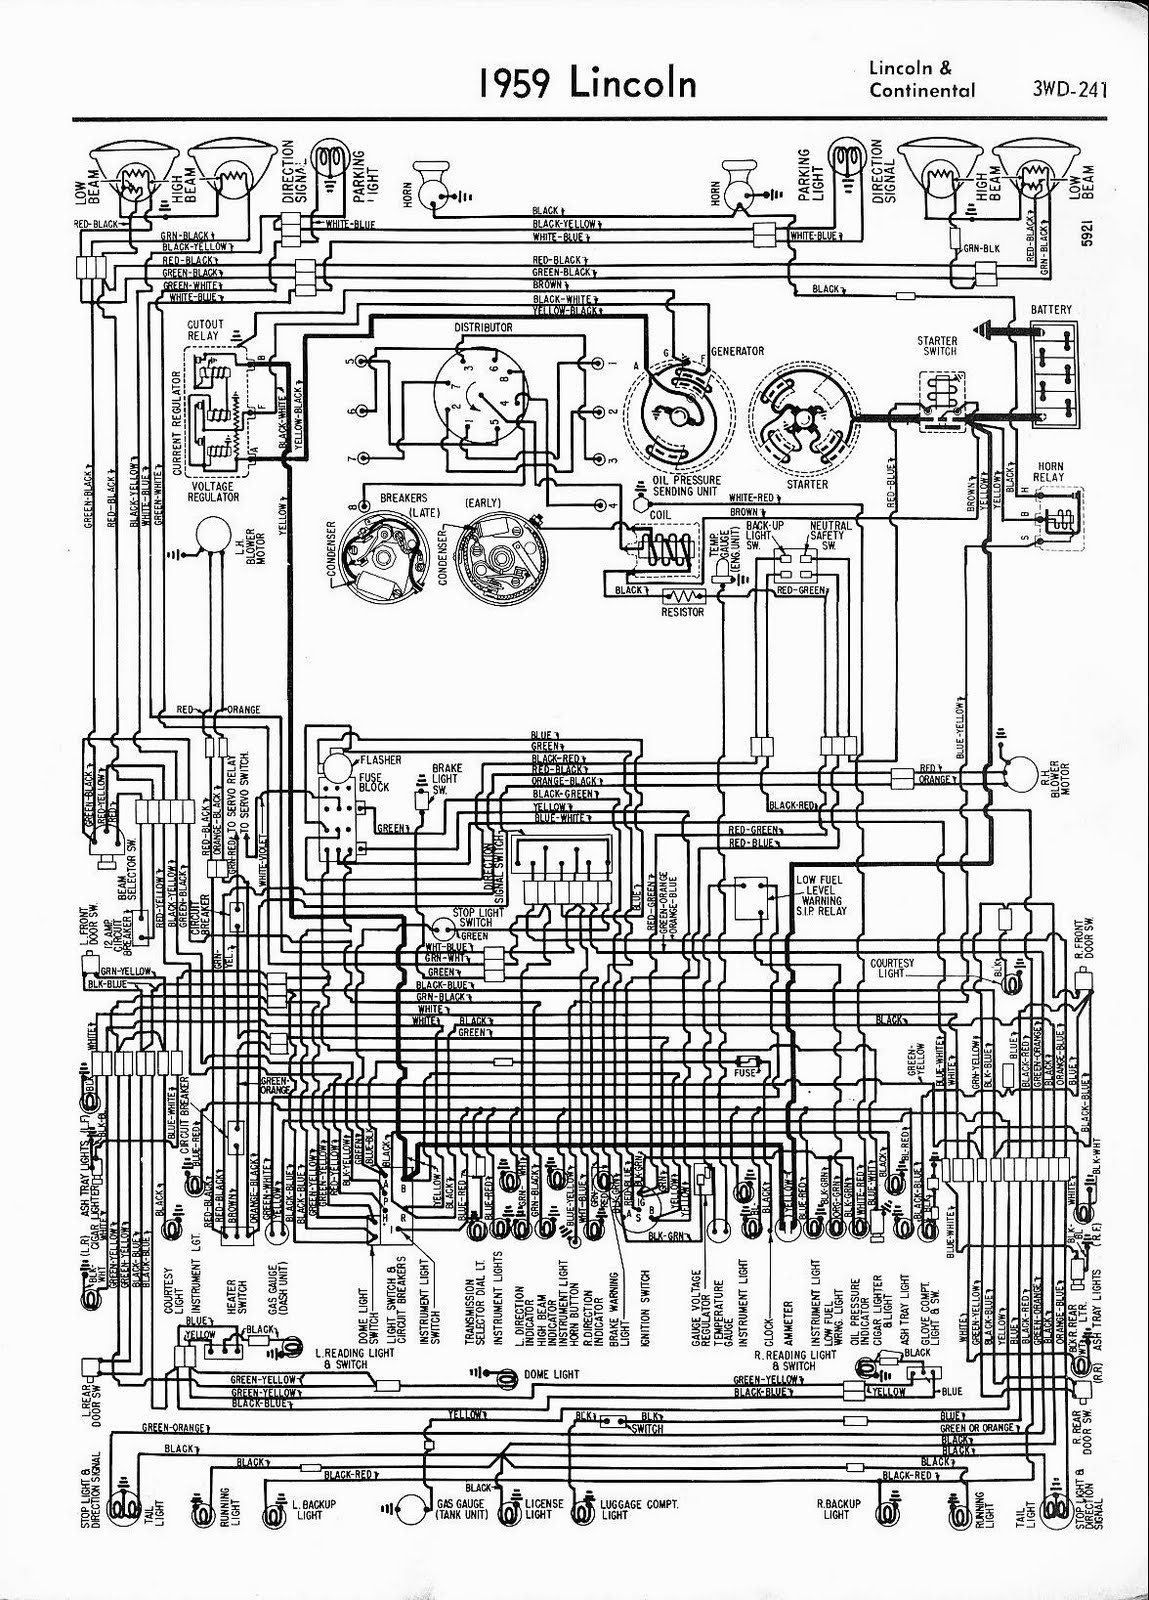 1964 Lincoln Continental Wiring Diagram FULL Version HD Quality Wiring  Diagram - SNOW.YTI.FRYTI.FR